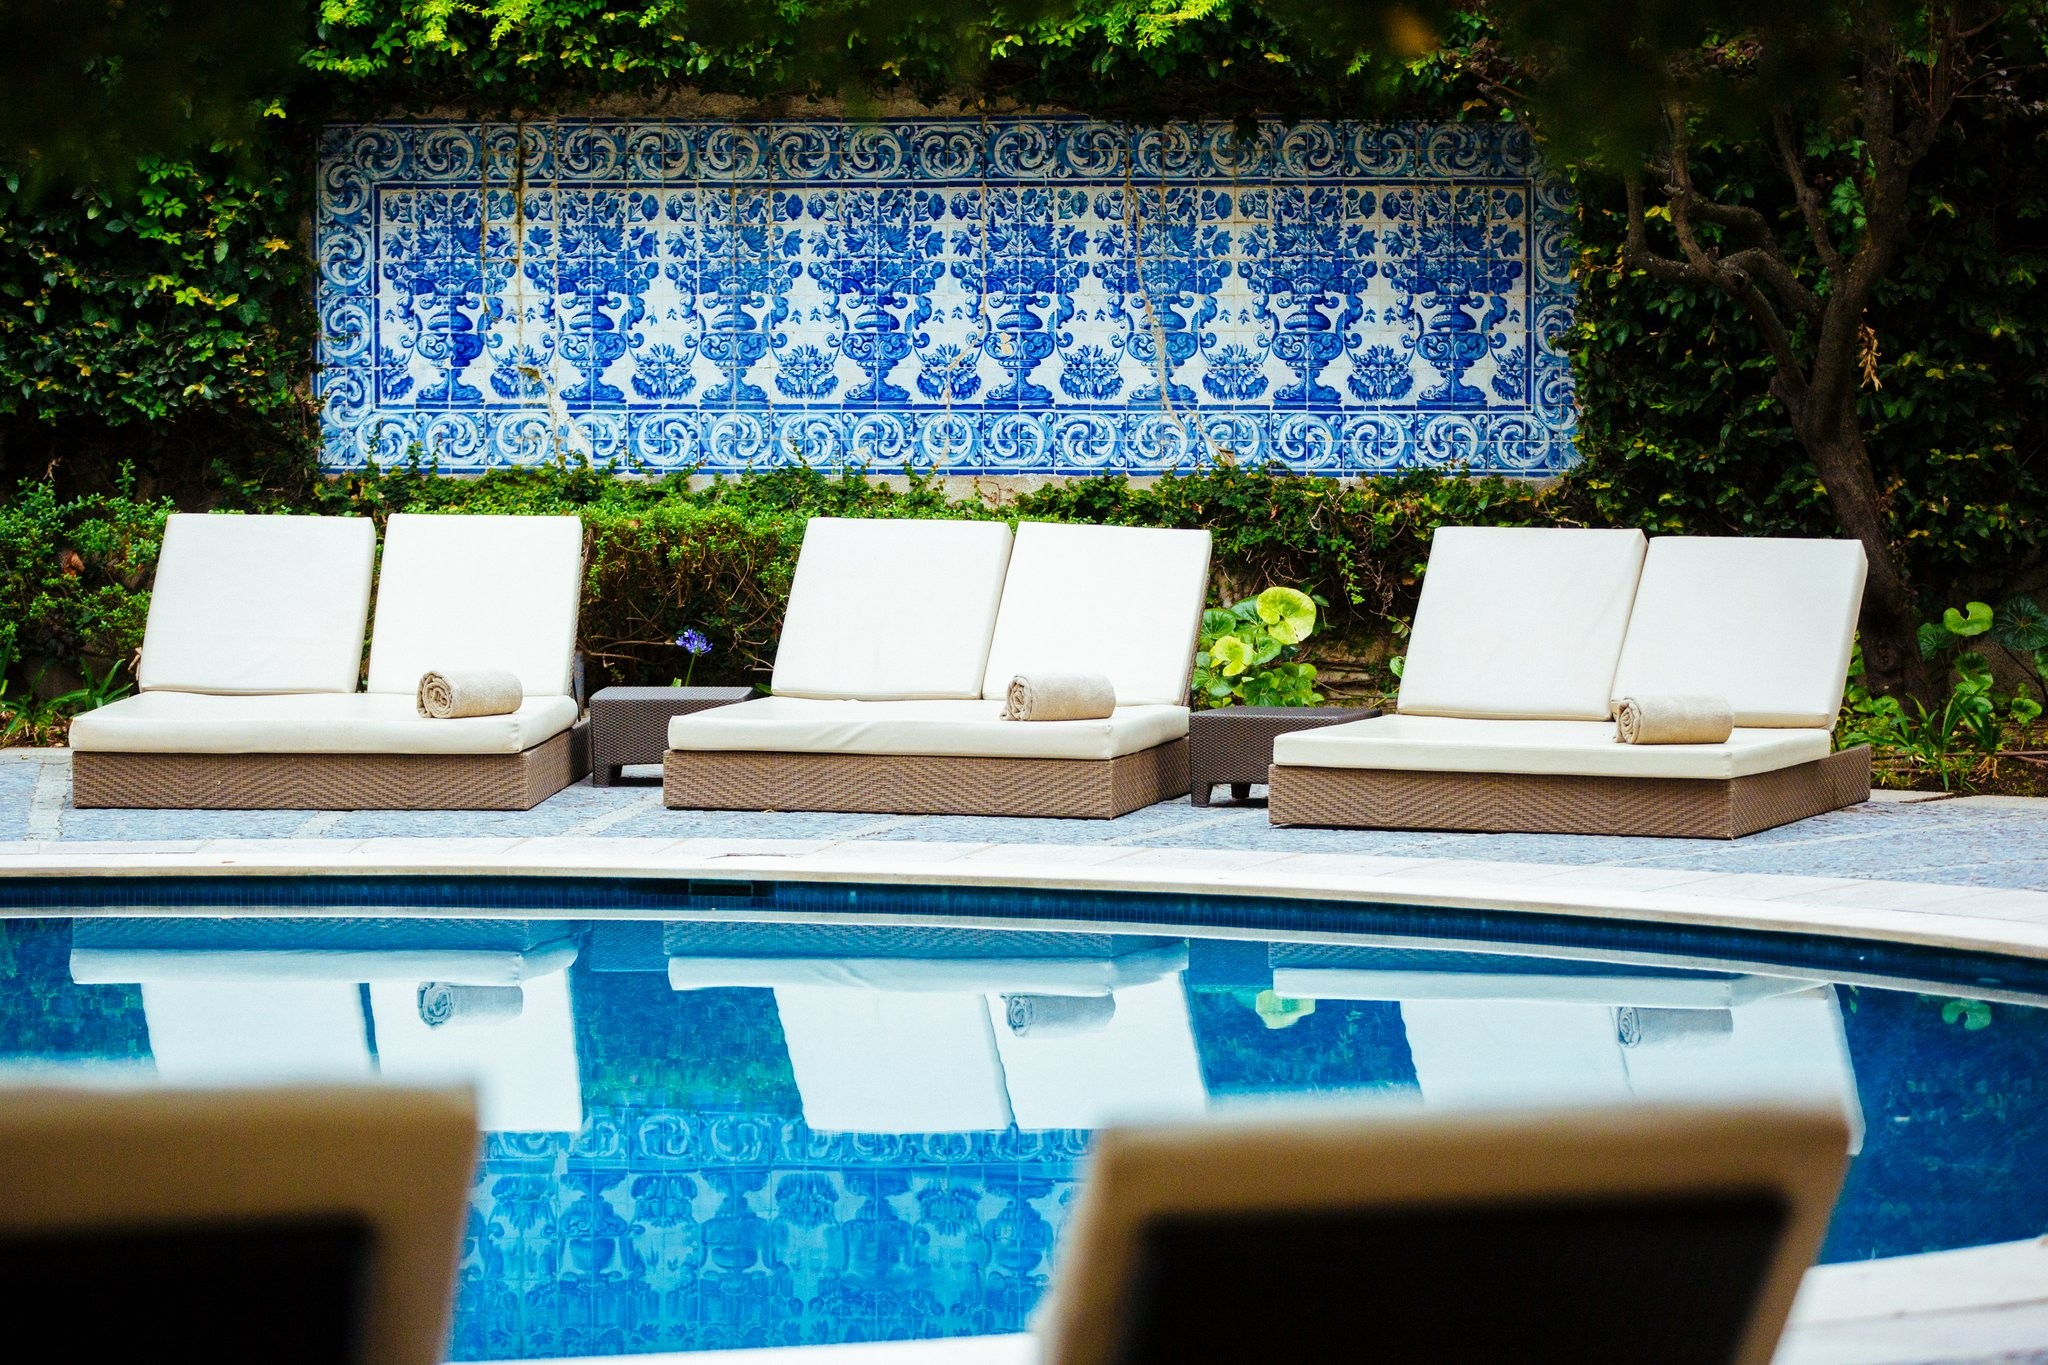 The calm oasis that is the outdoor swimming pool